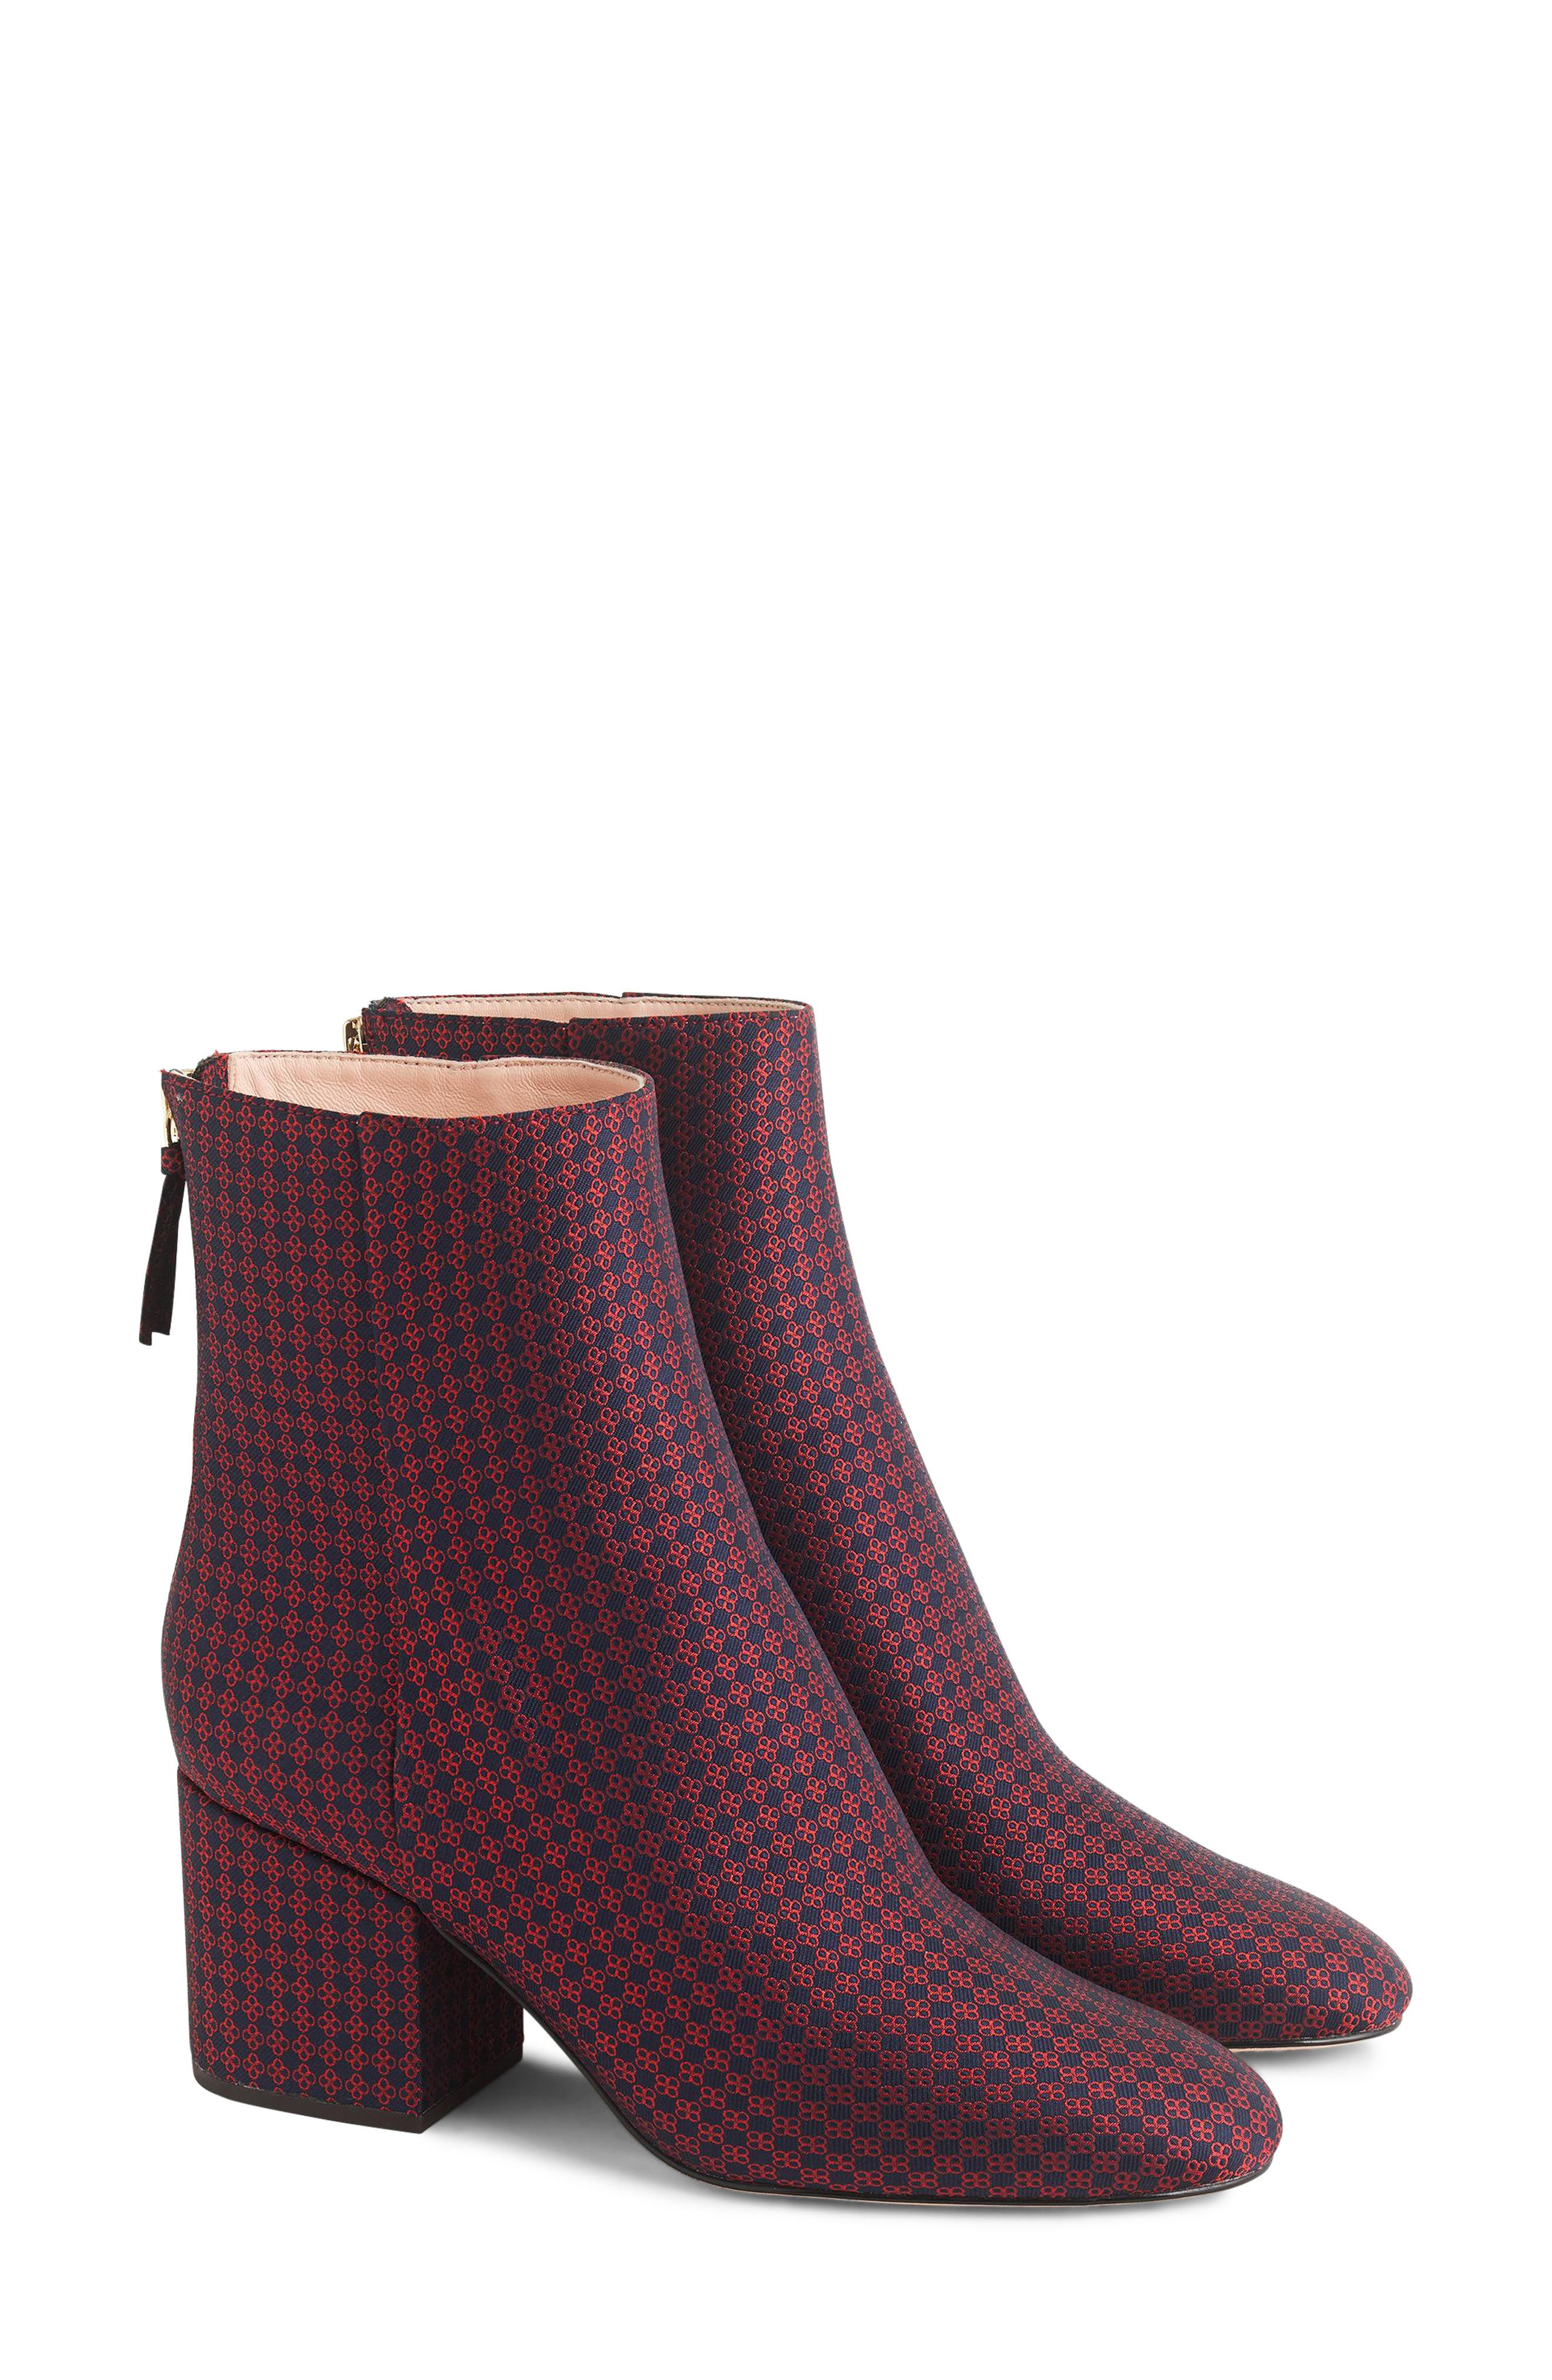 Maya Ankle Bootie,                             Main thumbnail 1, color,                             NAVY/ RED PLAID